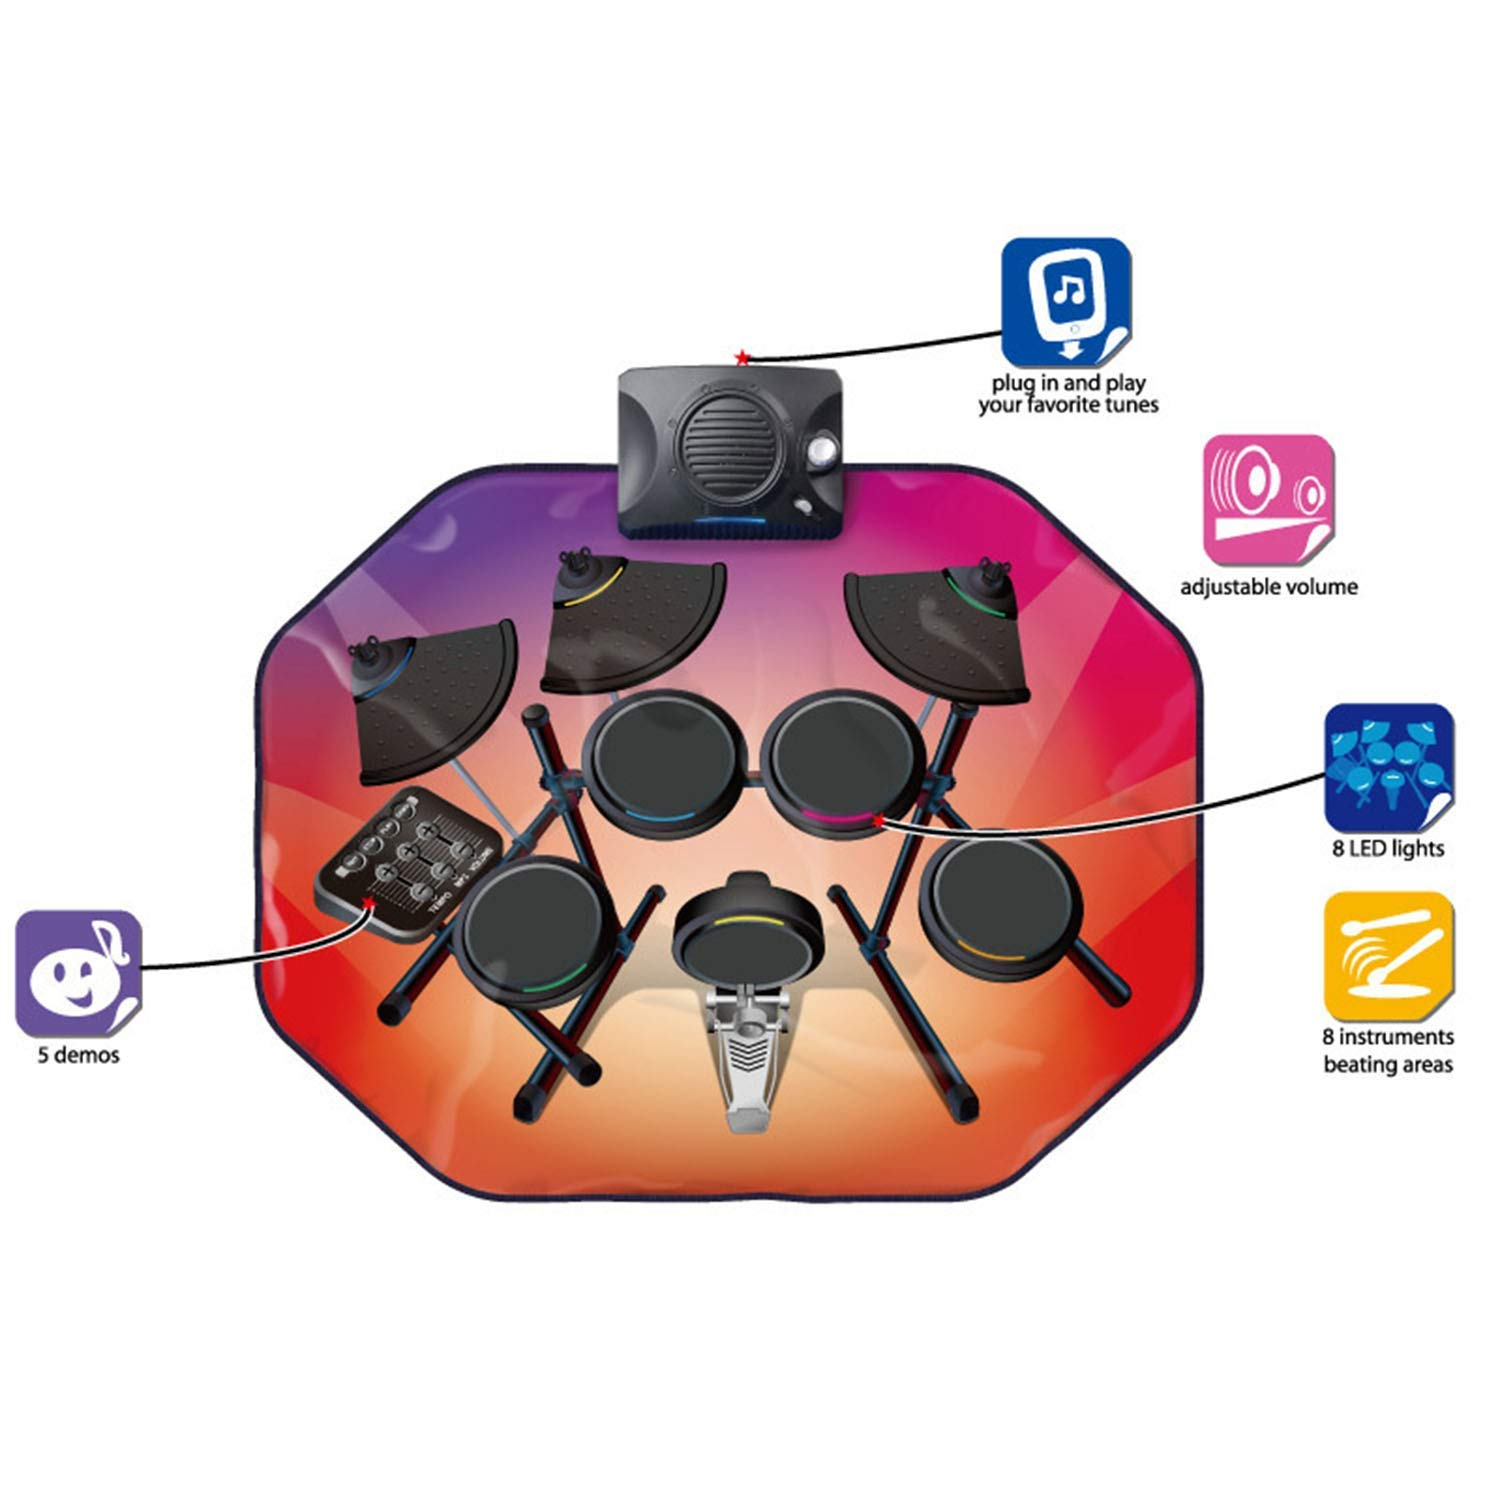 Drum Music Blanket, Jazz Drum Game Pad, Carpet Dance Mat, with Built in Music Tracks, 5 Music, Recording Function, Can Connect to Mobile Phone by ankt777 (Image #4)